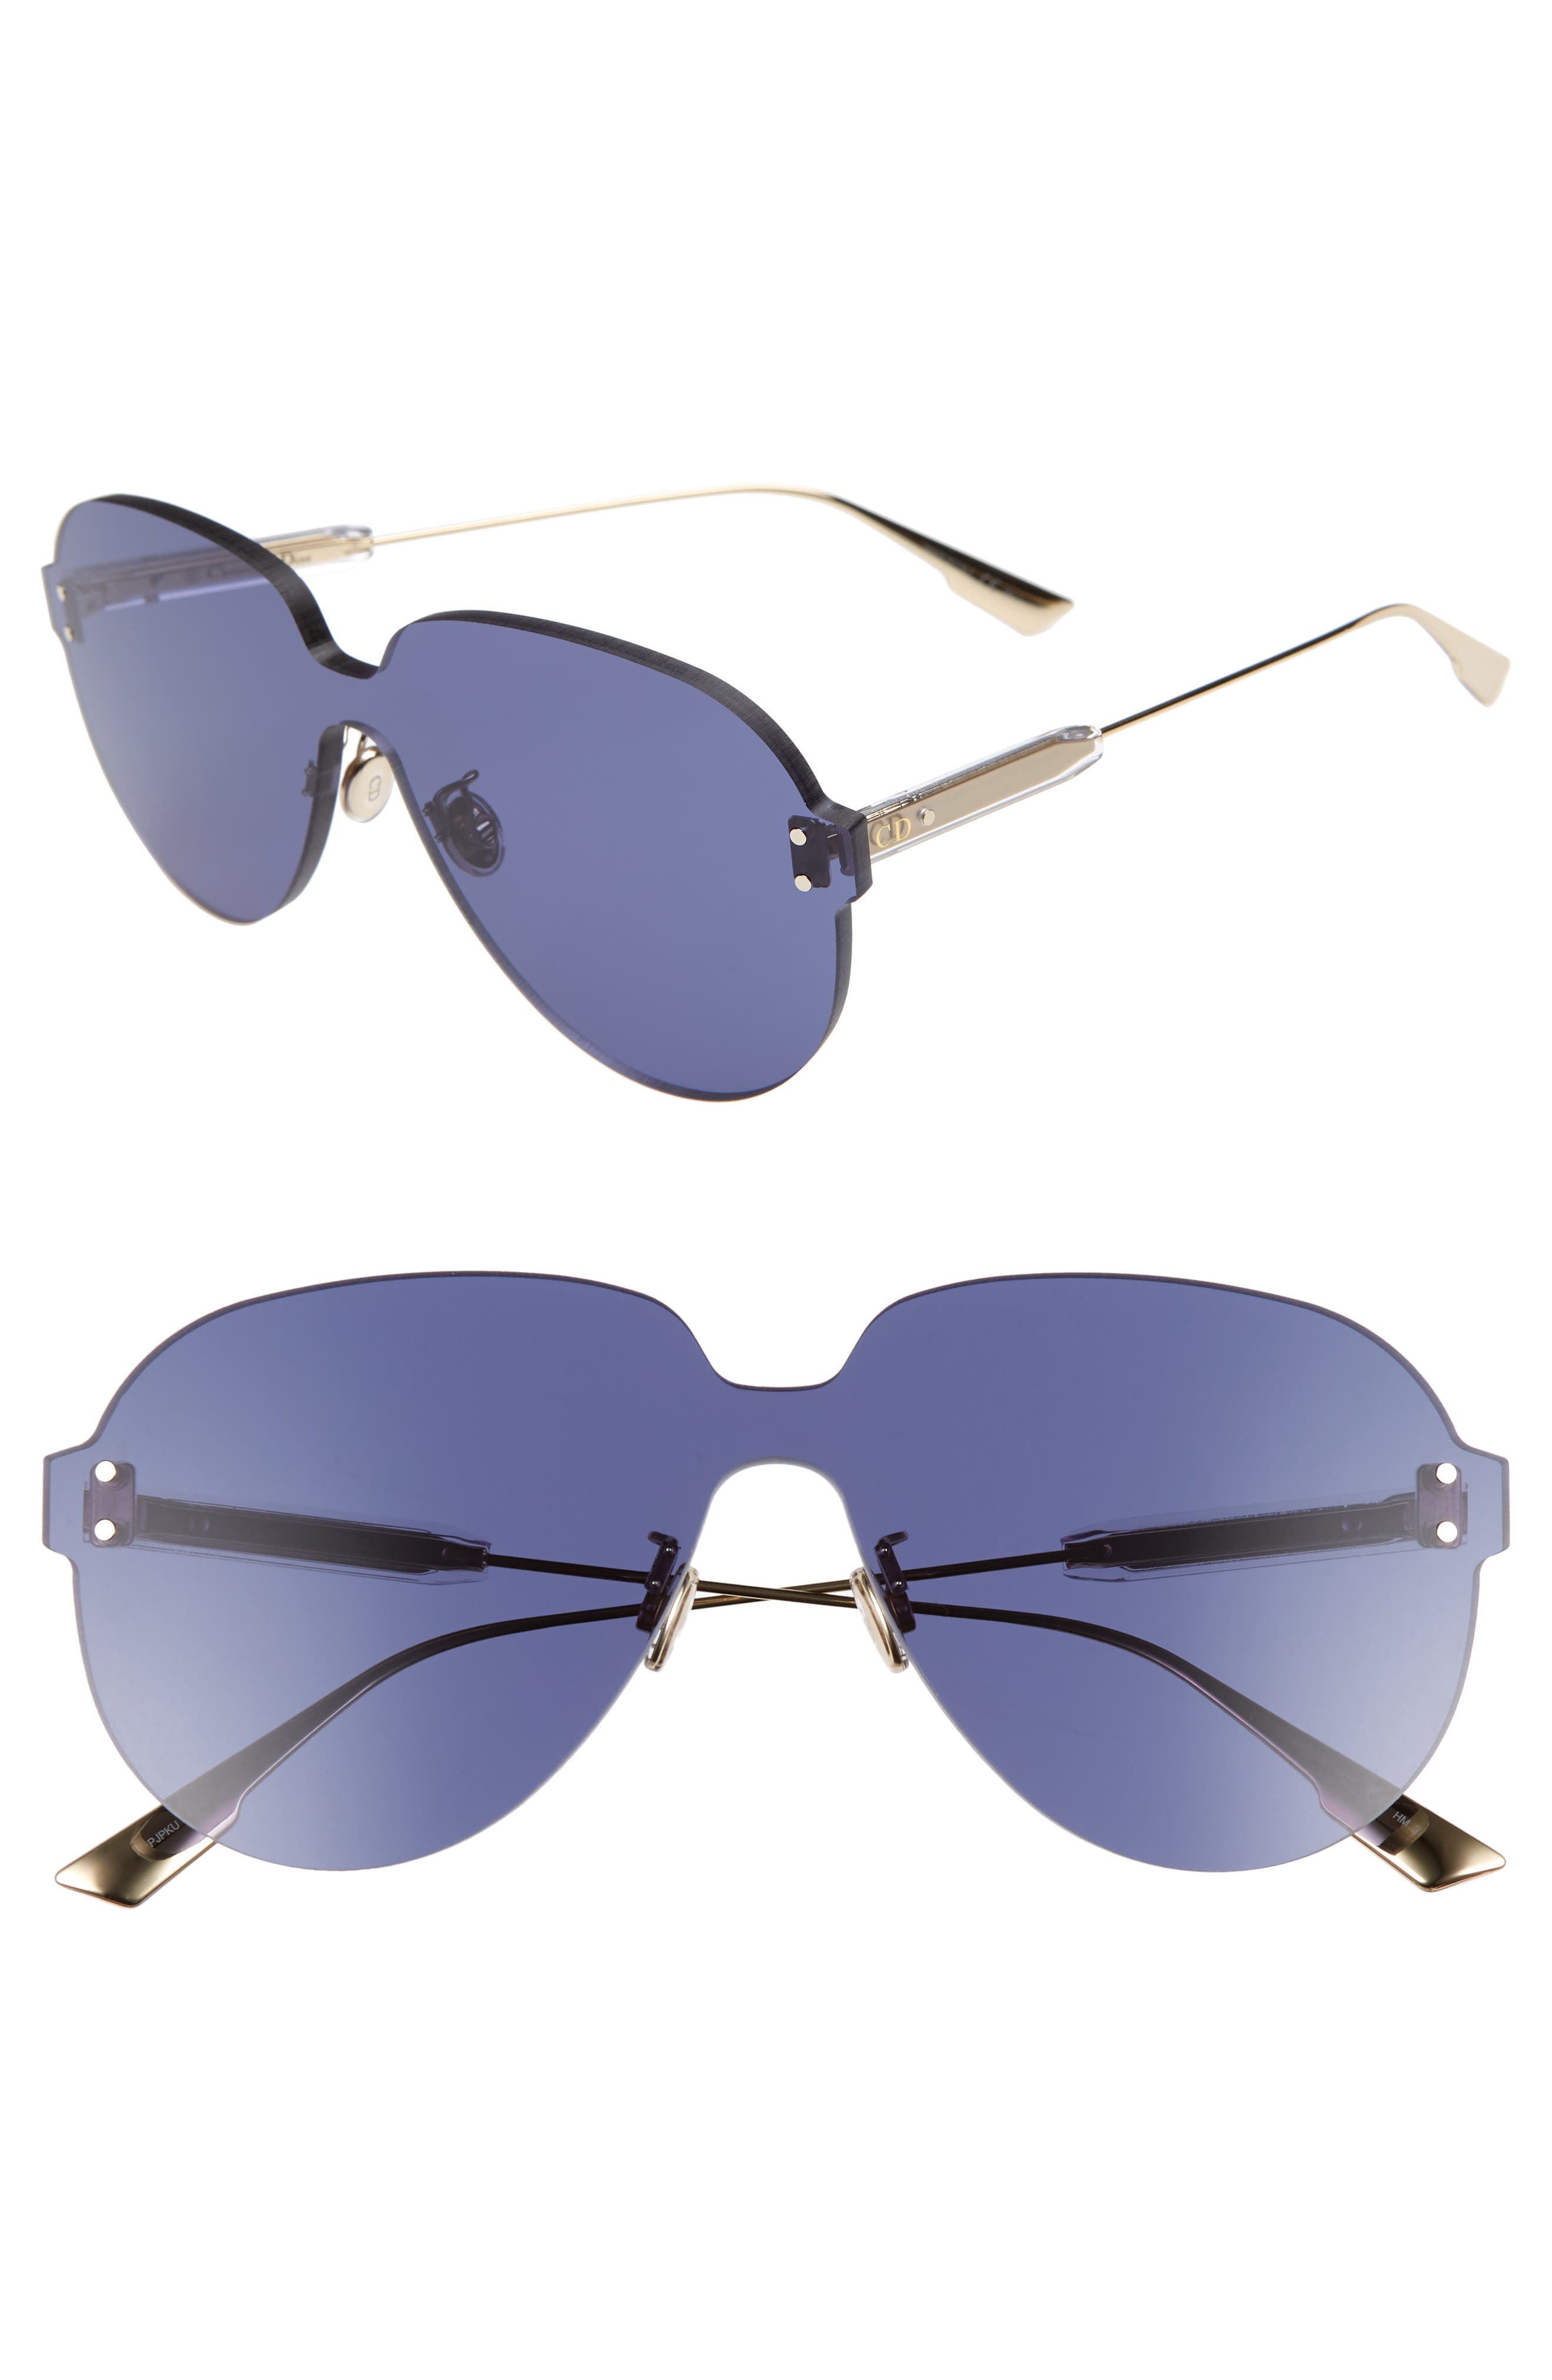 Christian Dior Quake3 14m Rimless Pilot Shield Sunglasses - Blue